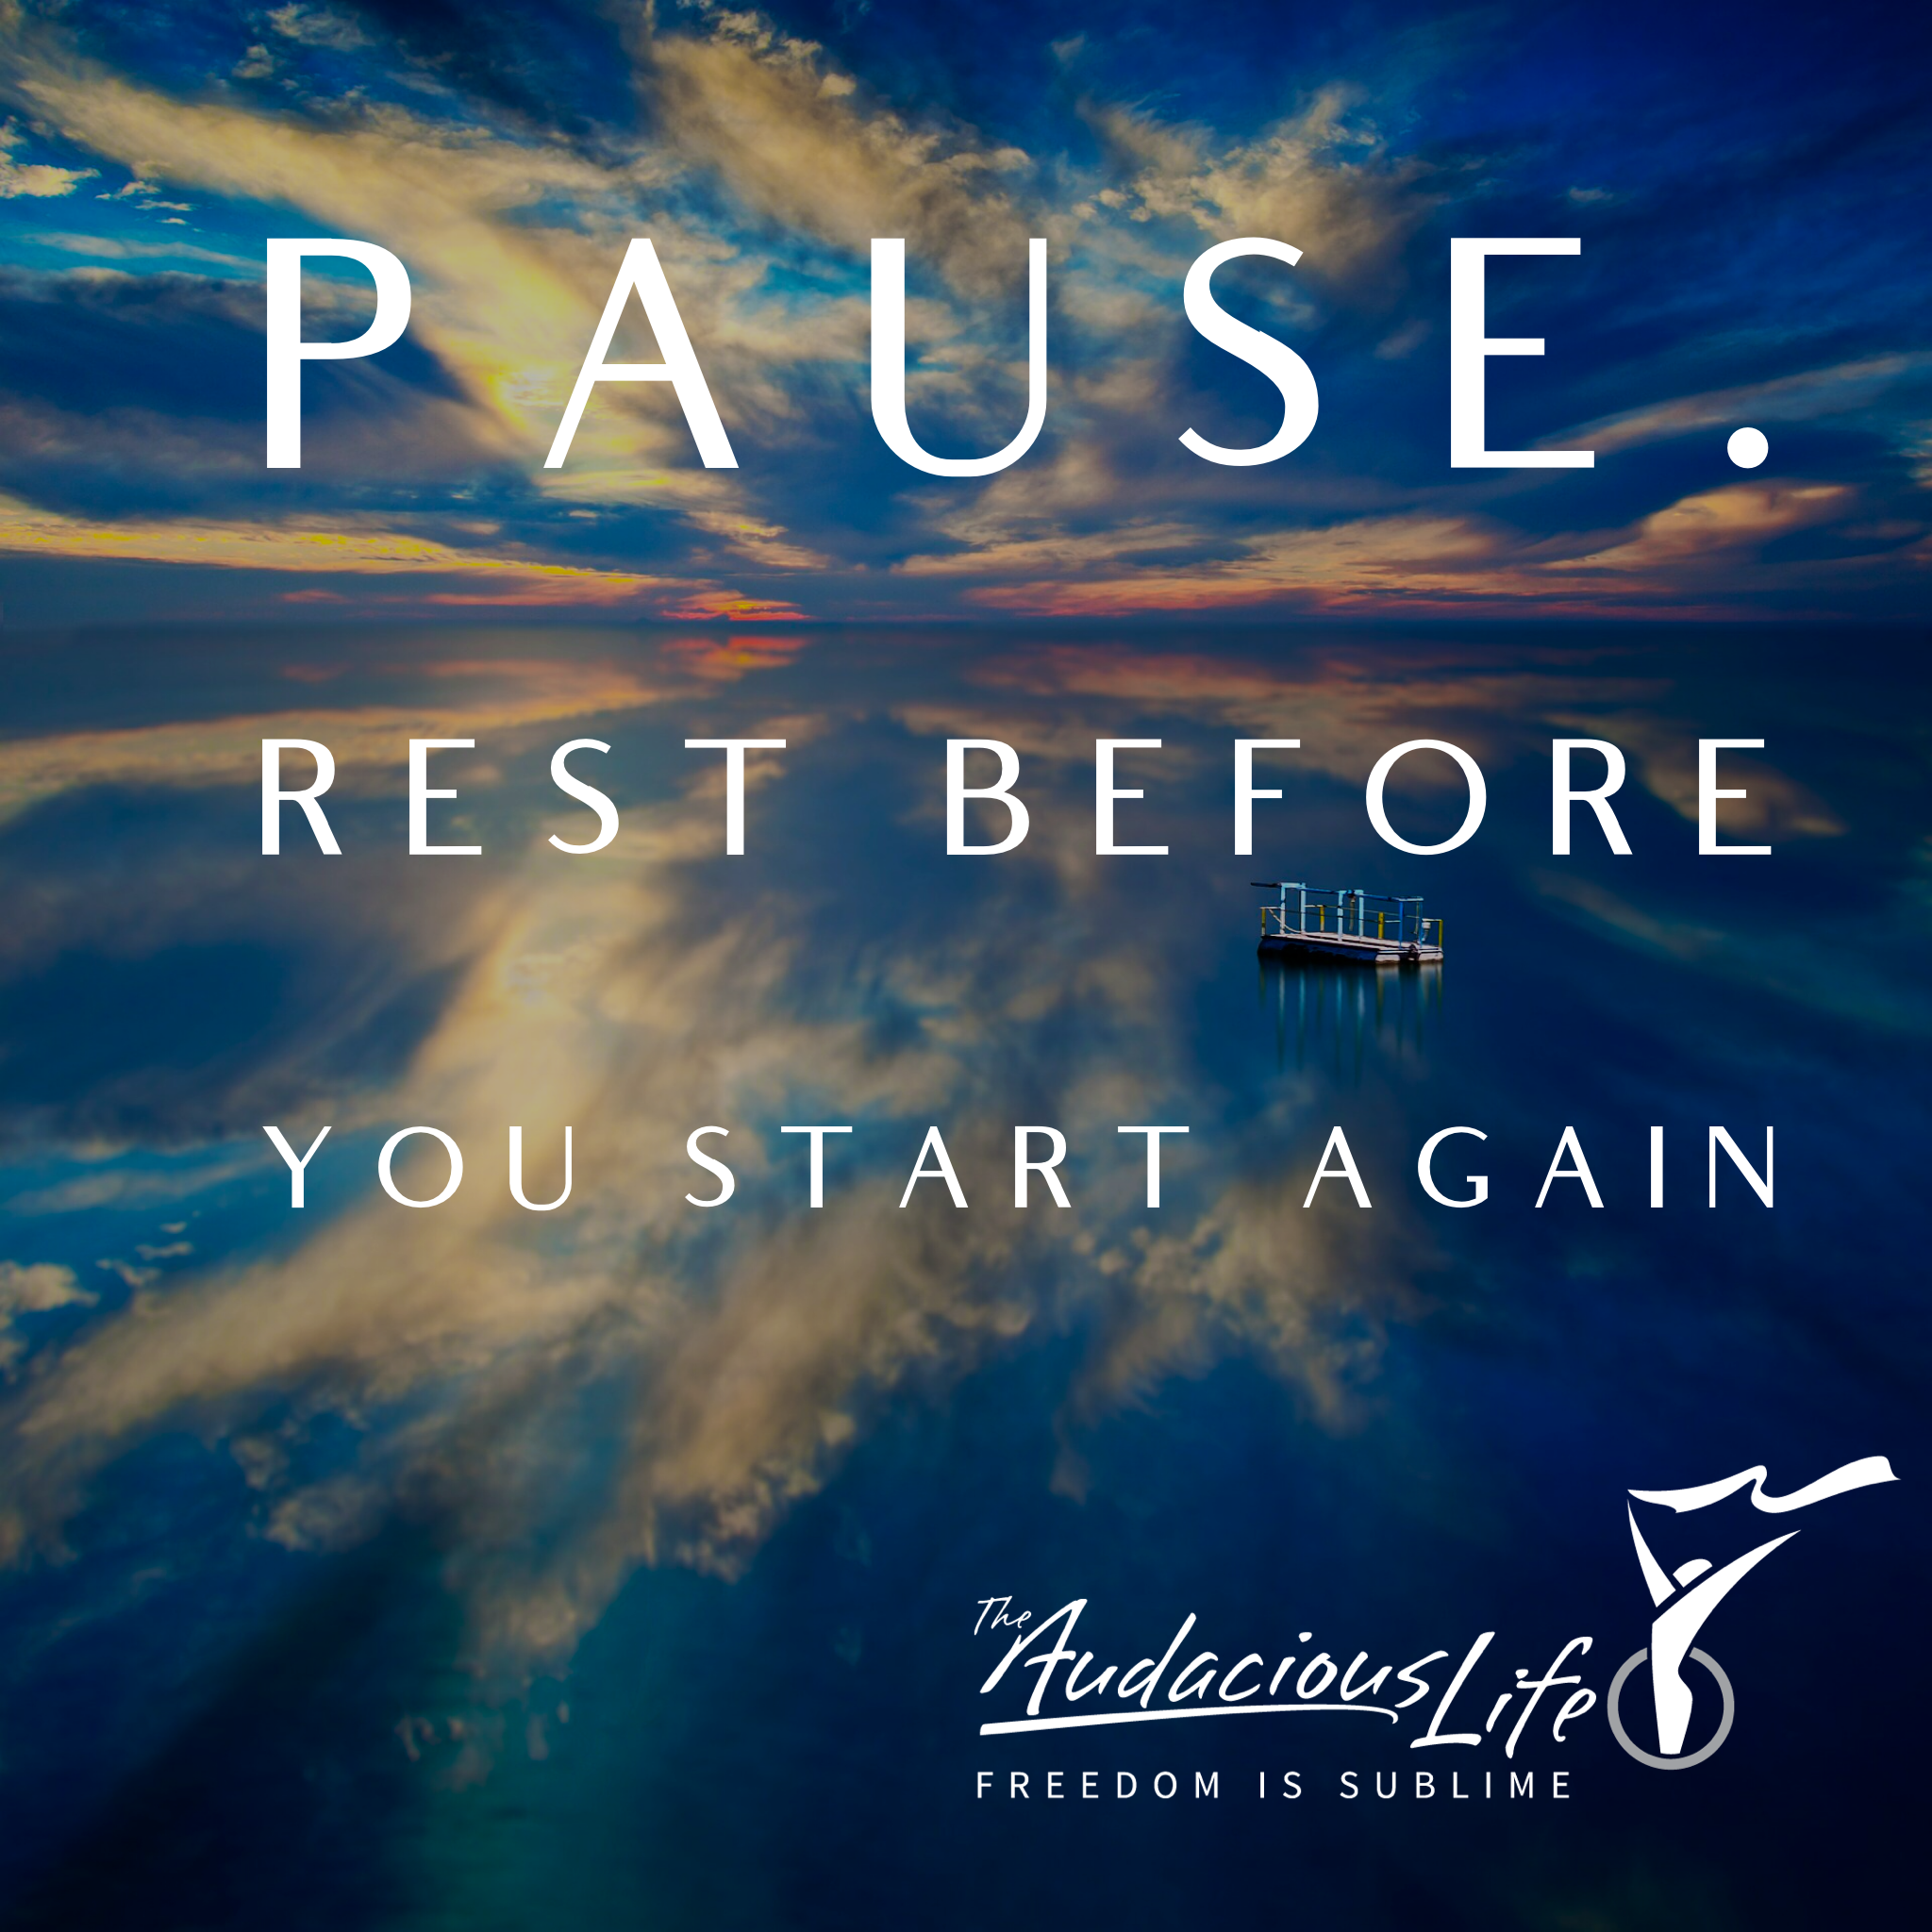 Season 4 - Pause. Rest Before You Start Again